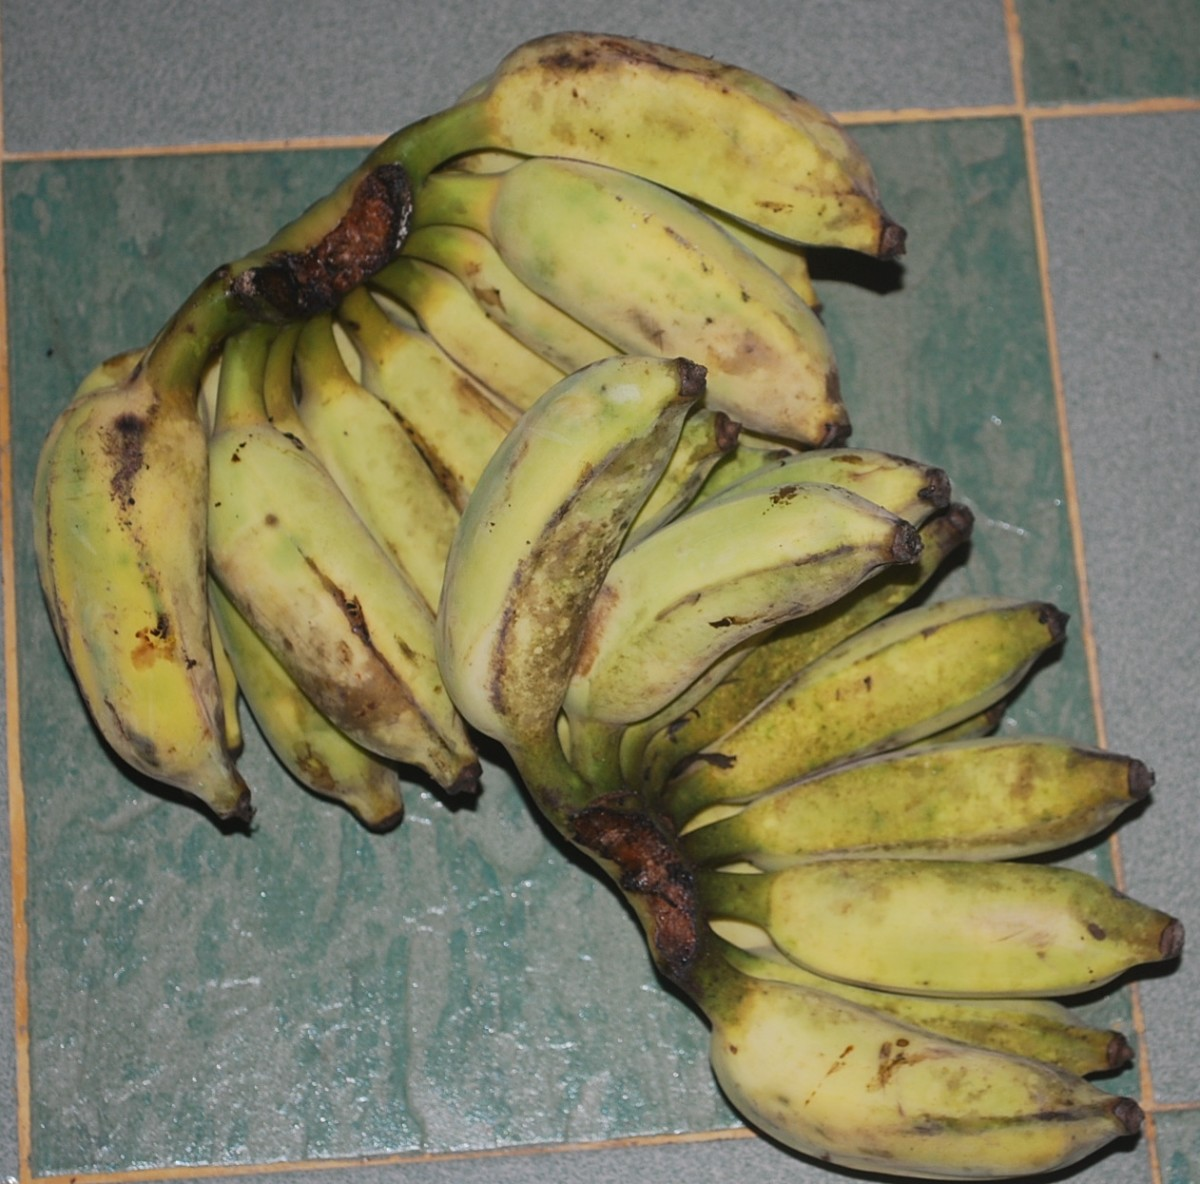 Pisang awak, a not-so-popular banana variety, as it has seeds that can be a nuisance when you eat them as banana fritters.